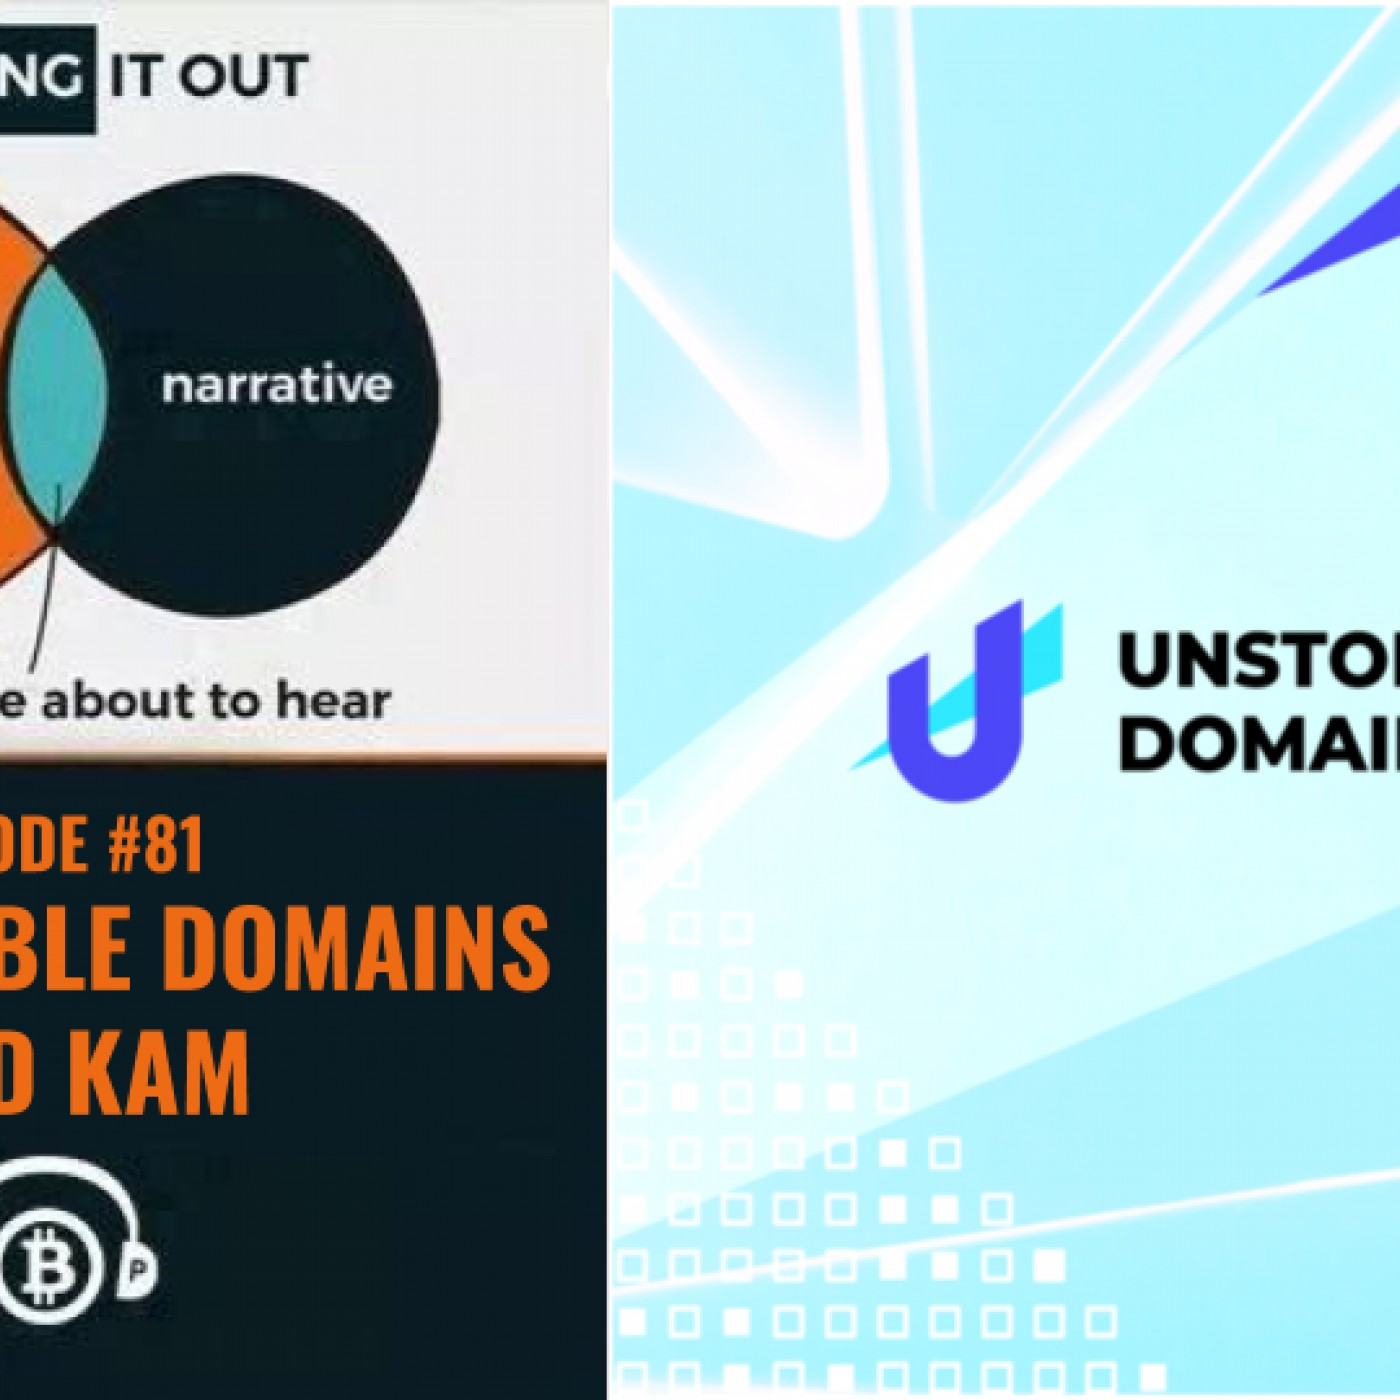 Hashing It Out #81- Unstoppable Domains Brad Kam